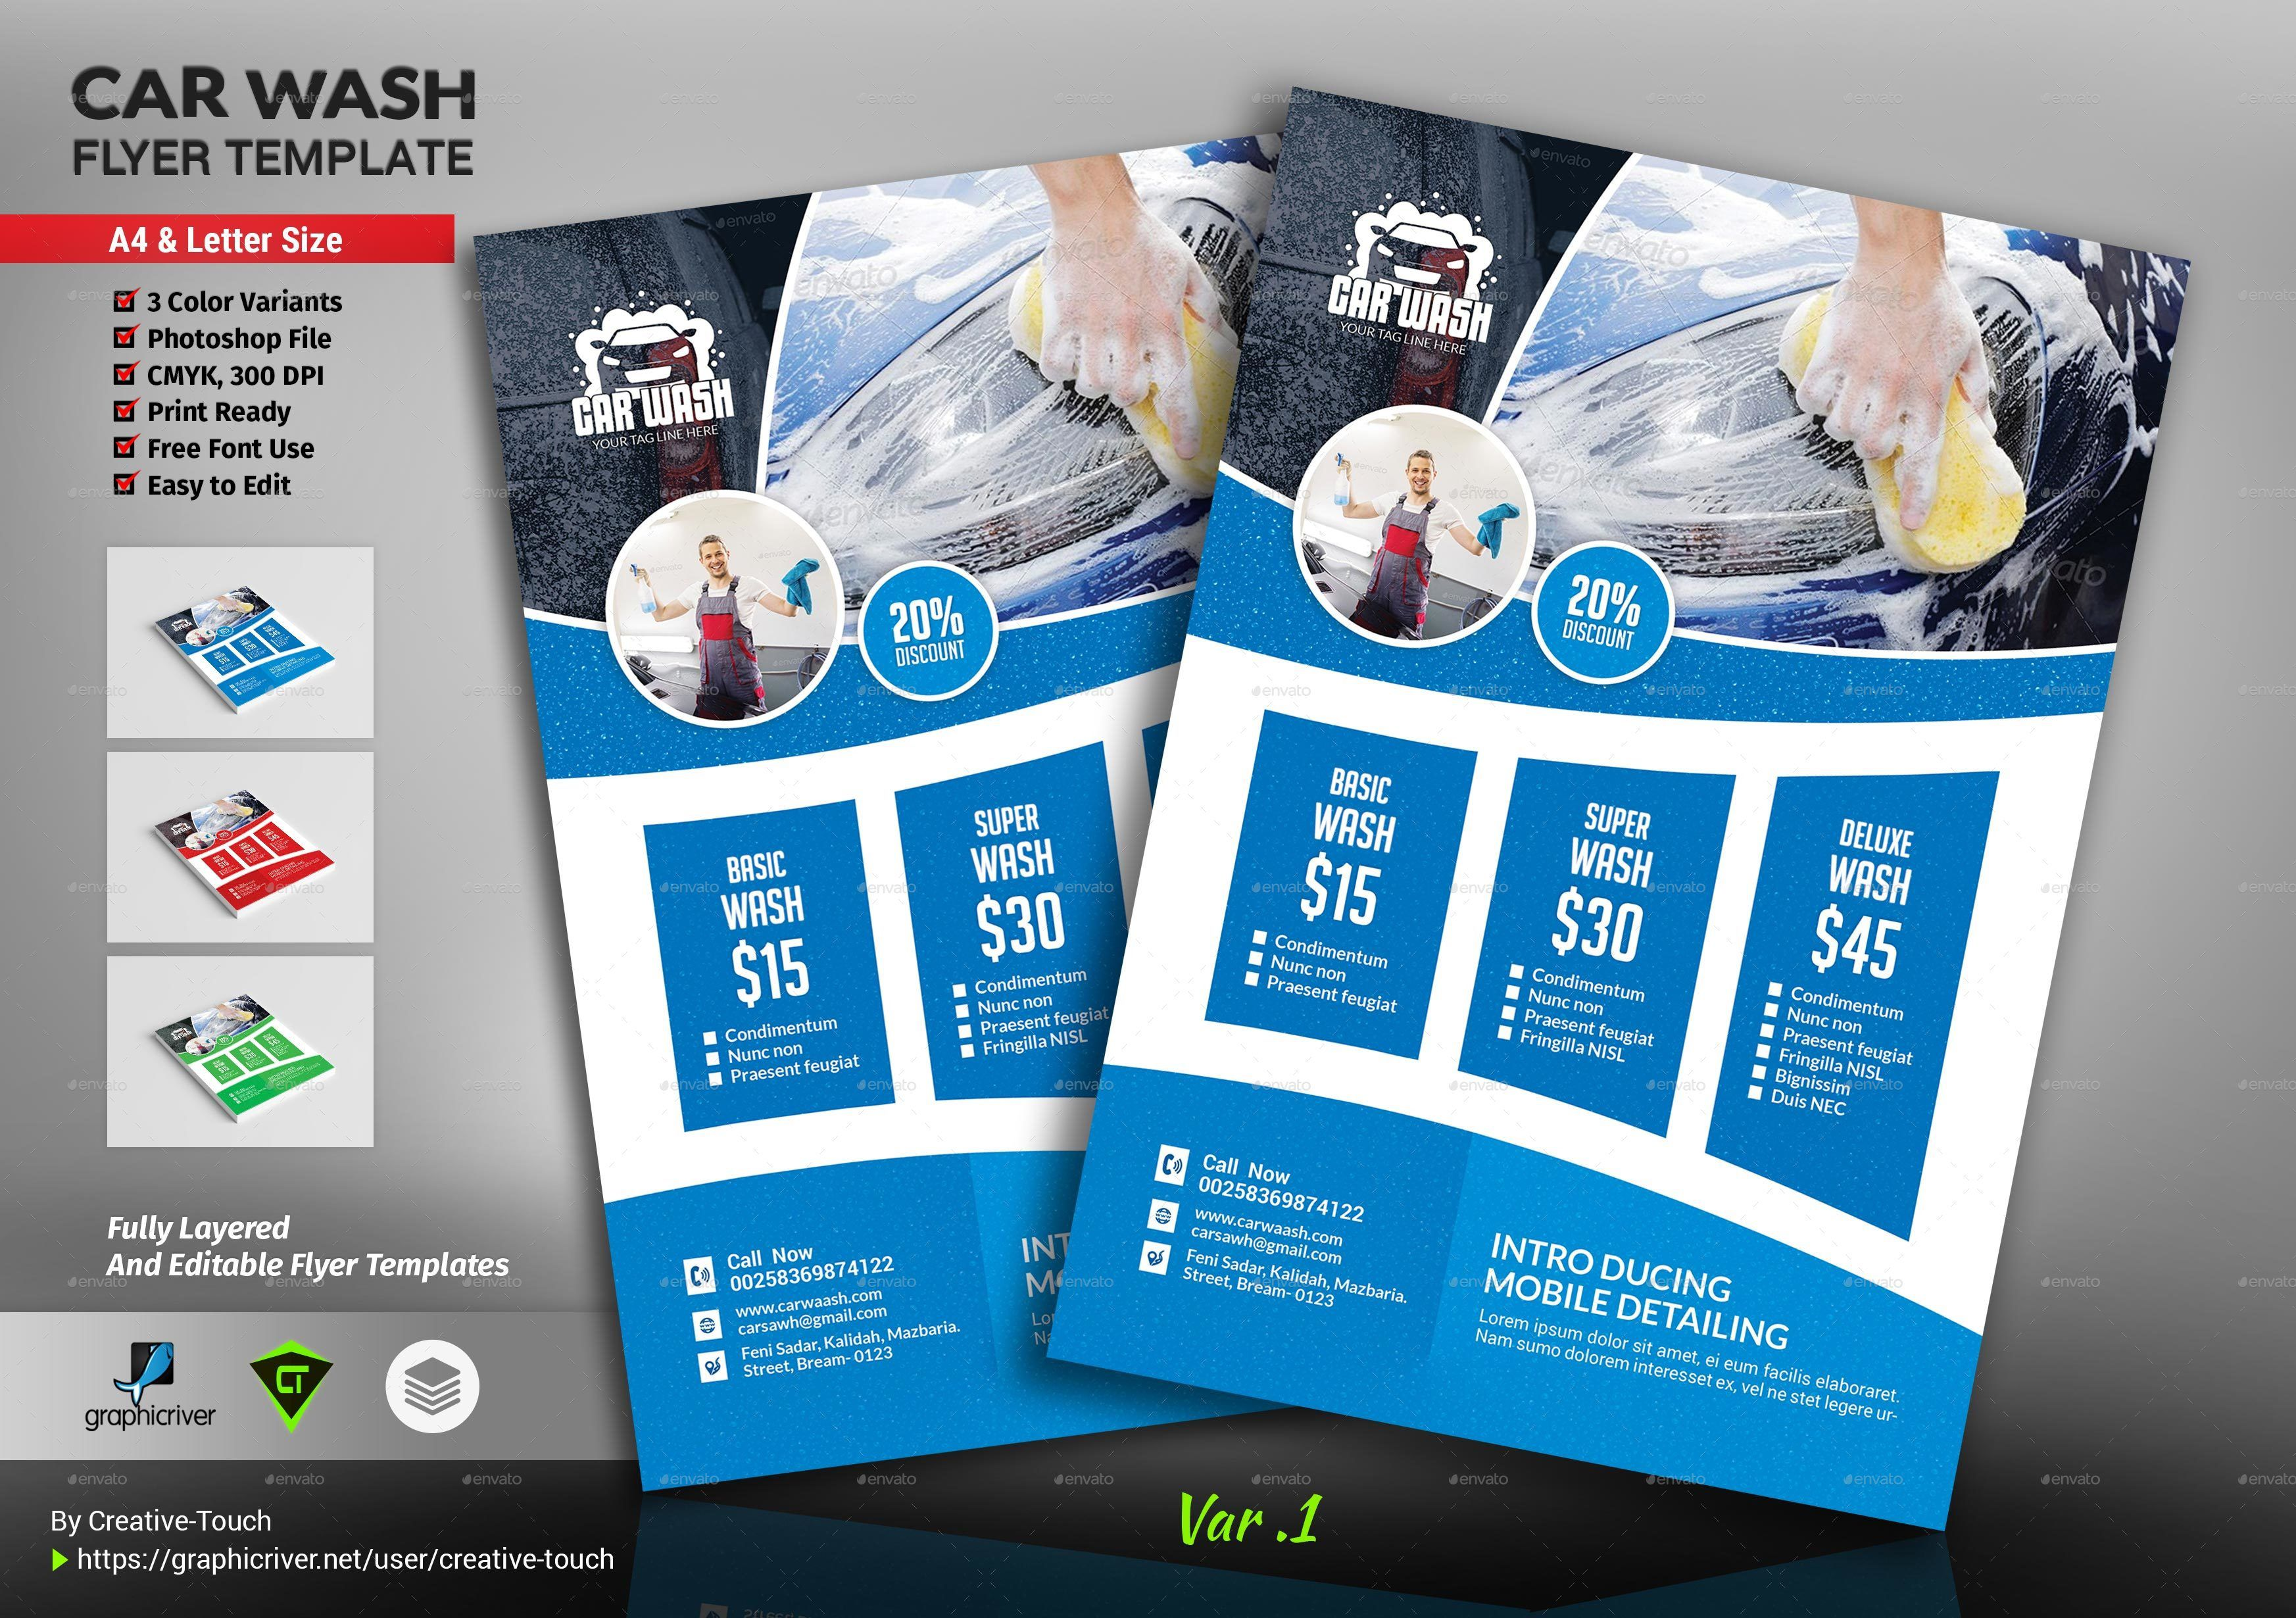 000 Incredible Car Wash Flyer Template Photo  Free Fundraiser DownloadFull